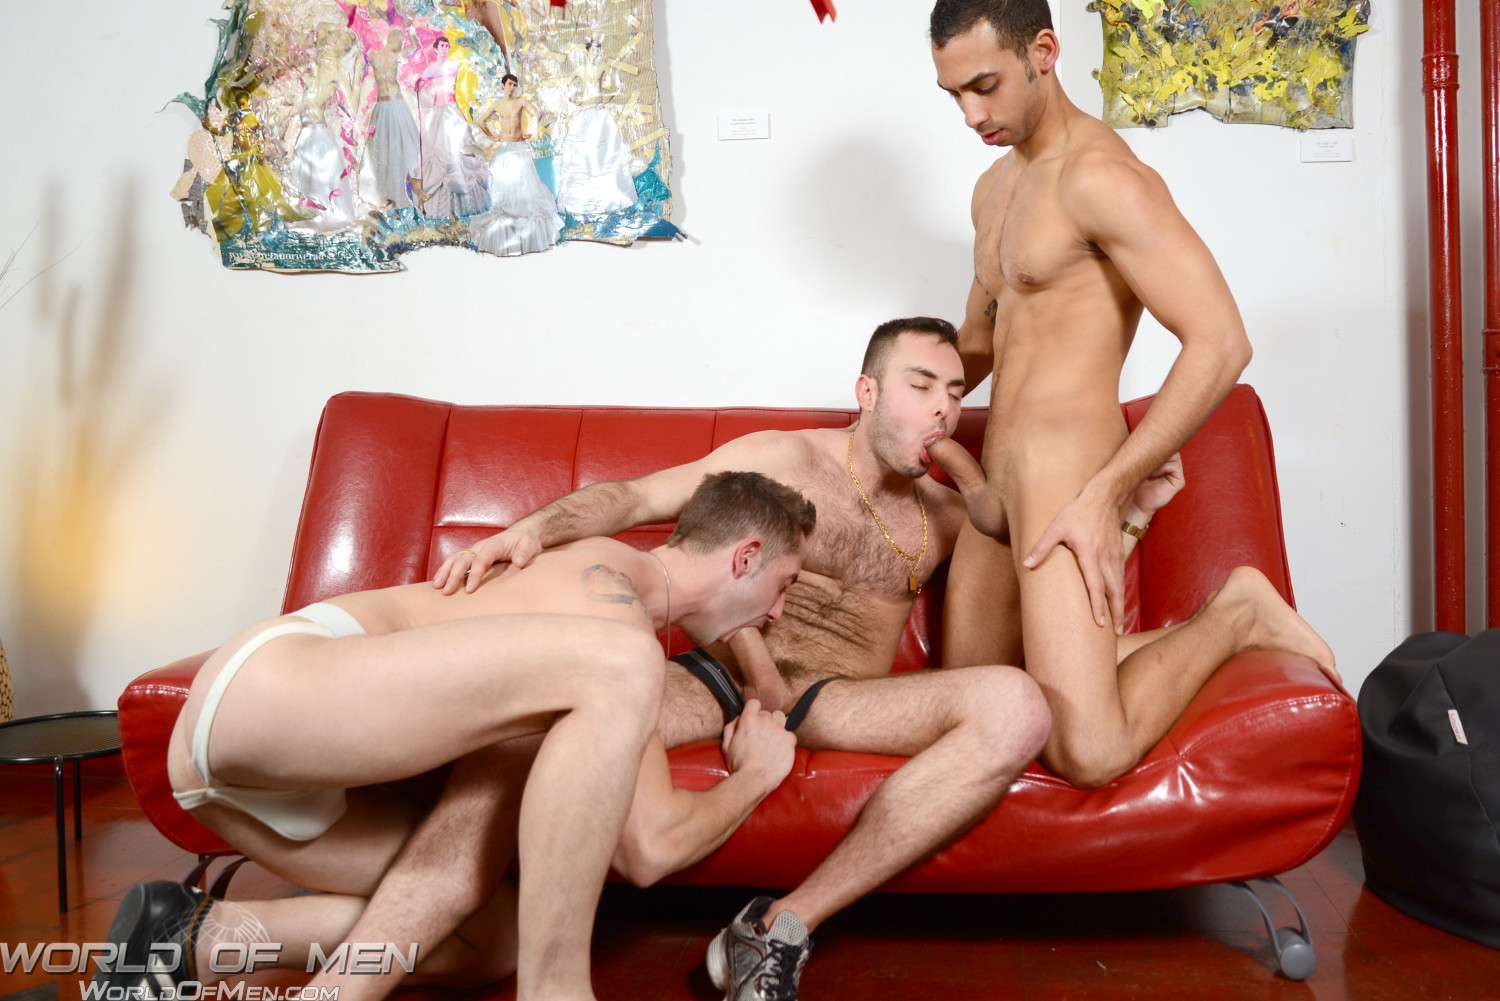 World-of-Men-Macanao-Torres-and-Juan-Lopez-and-Elio-Guzman-threeway-fucking-Amateur-Gay-Porn-01.jpg